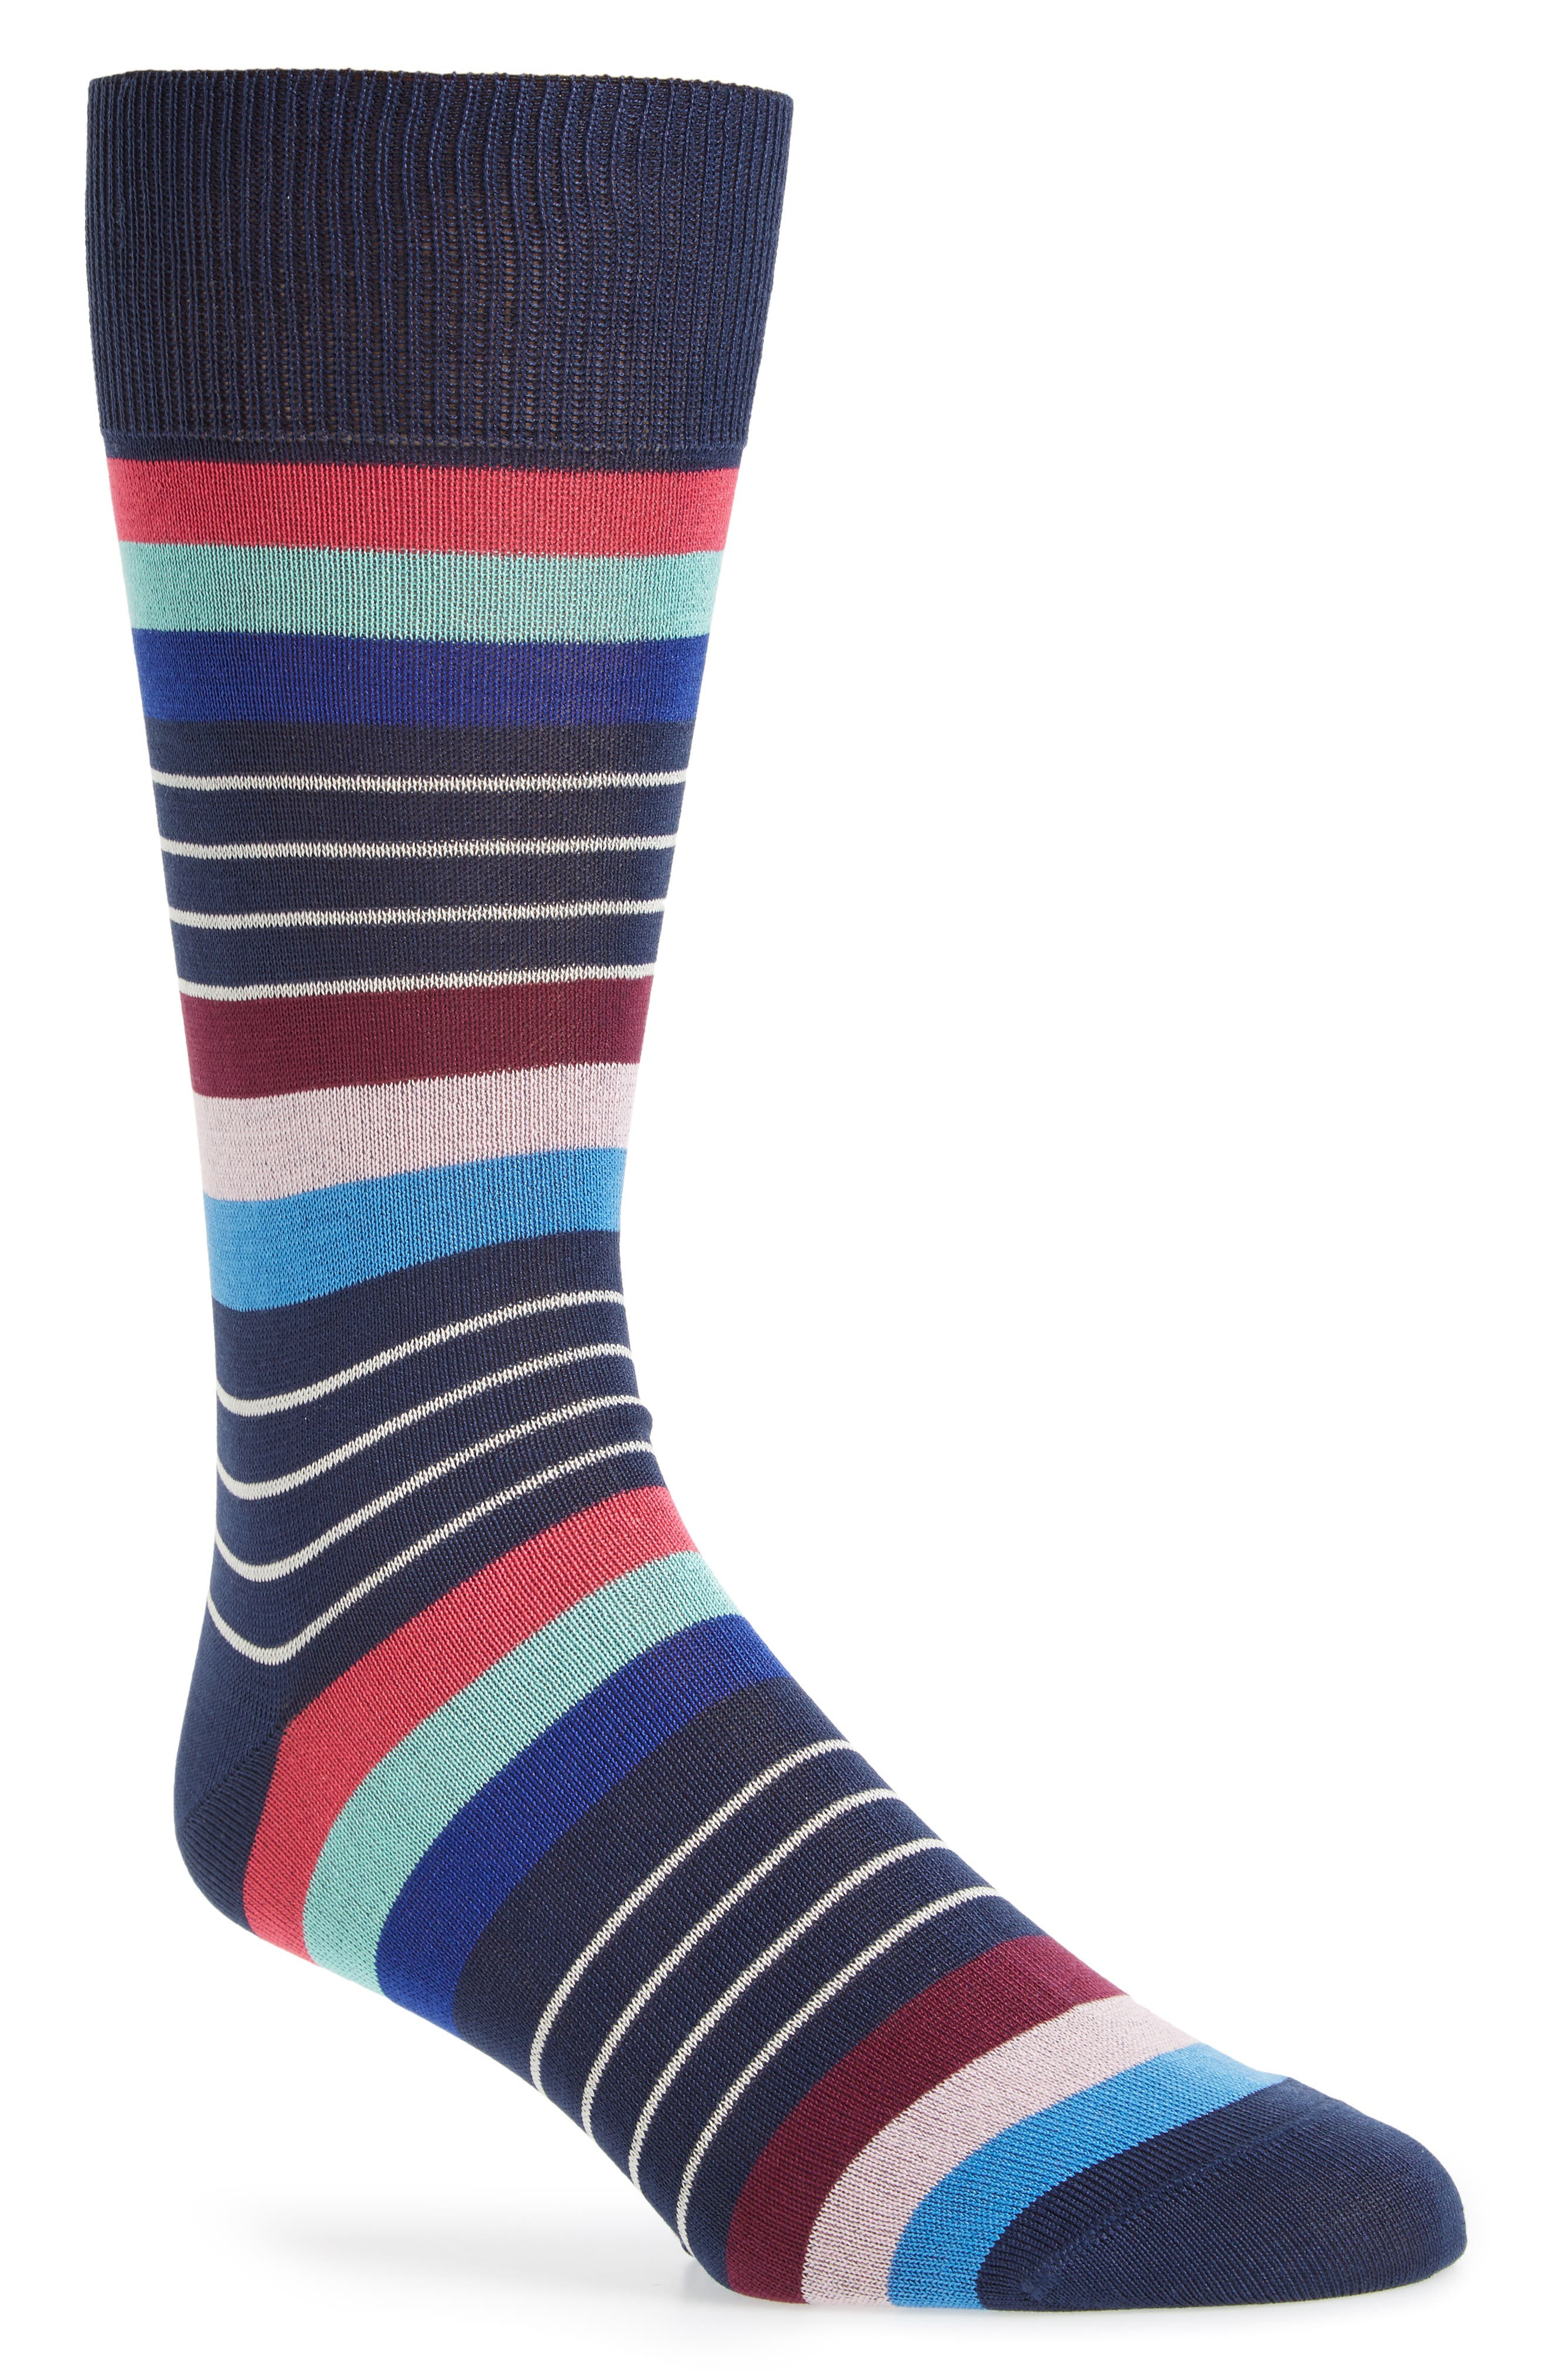 Kel Stripe Crew Socks,                         Main,                         color, Navy Multi